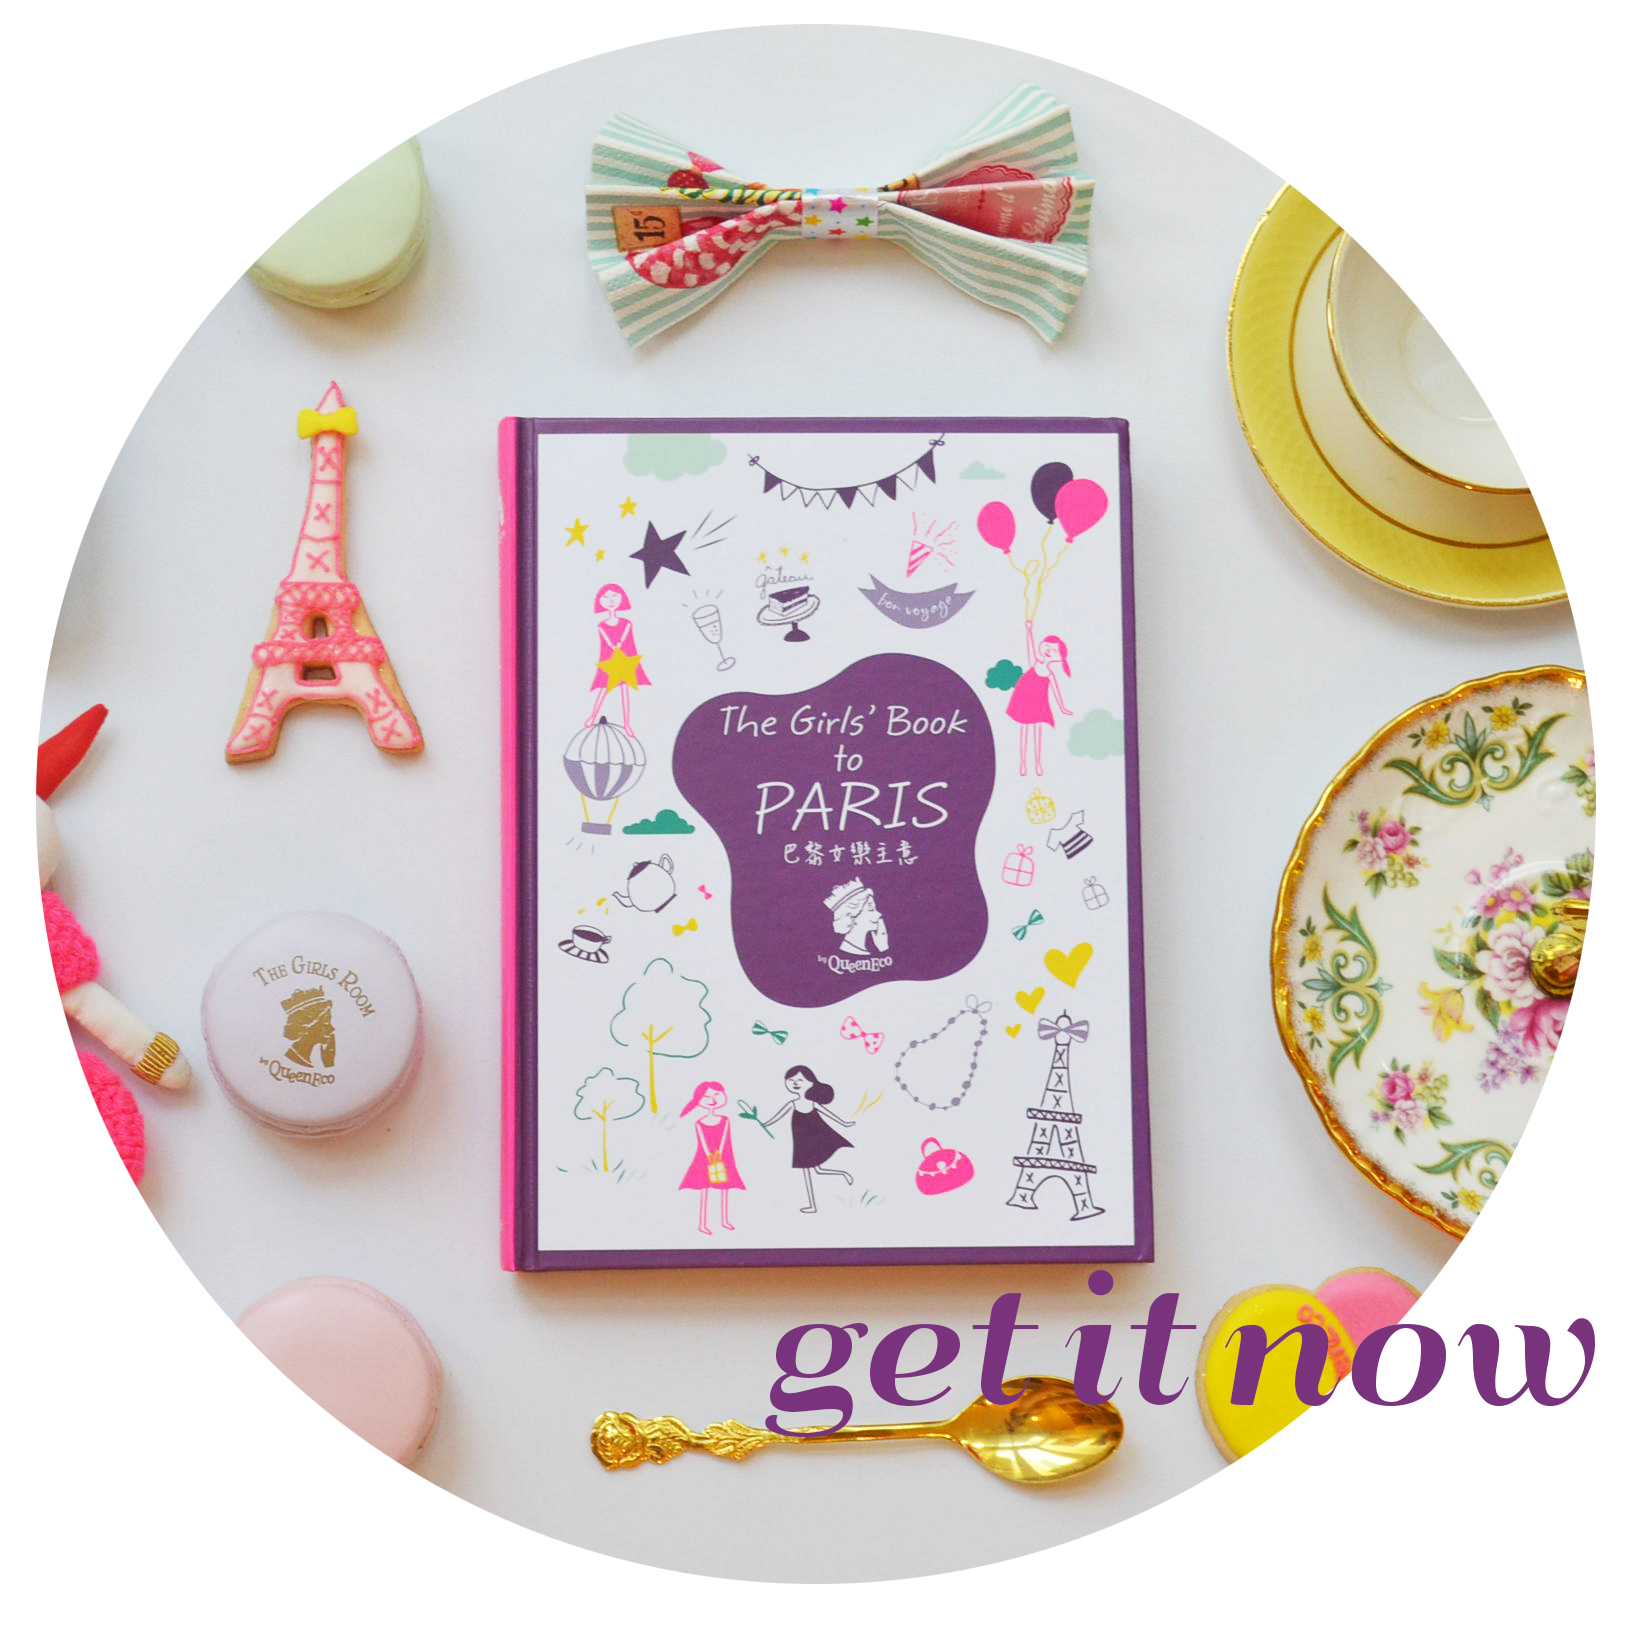 The Girls' Book to Paris by QueenEco 巴黎女樂主意